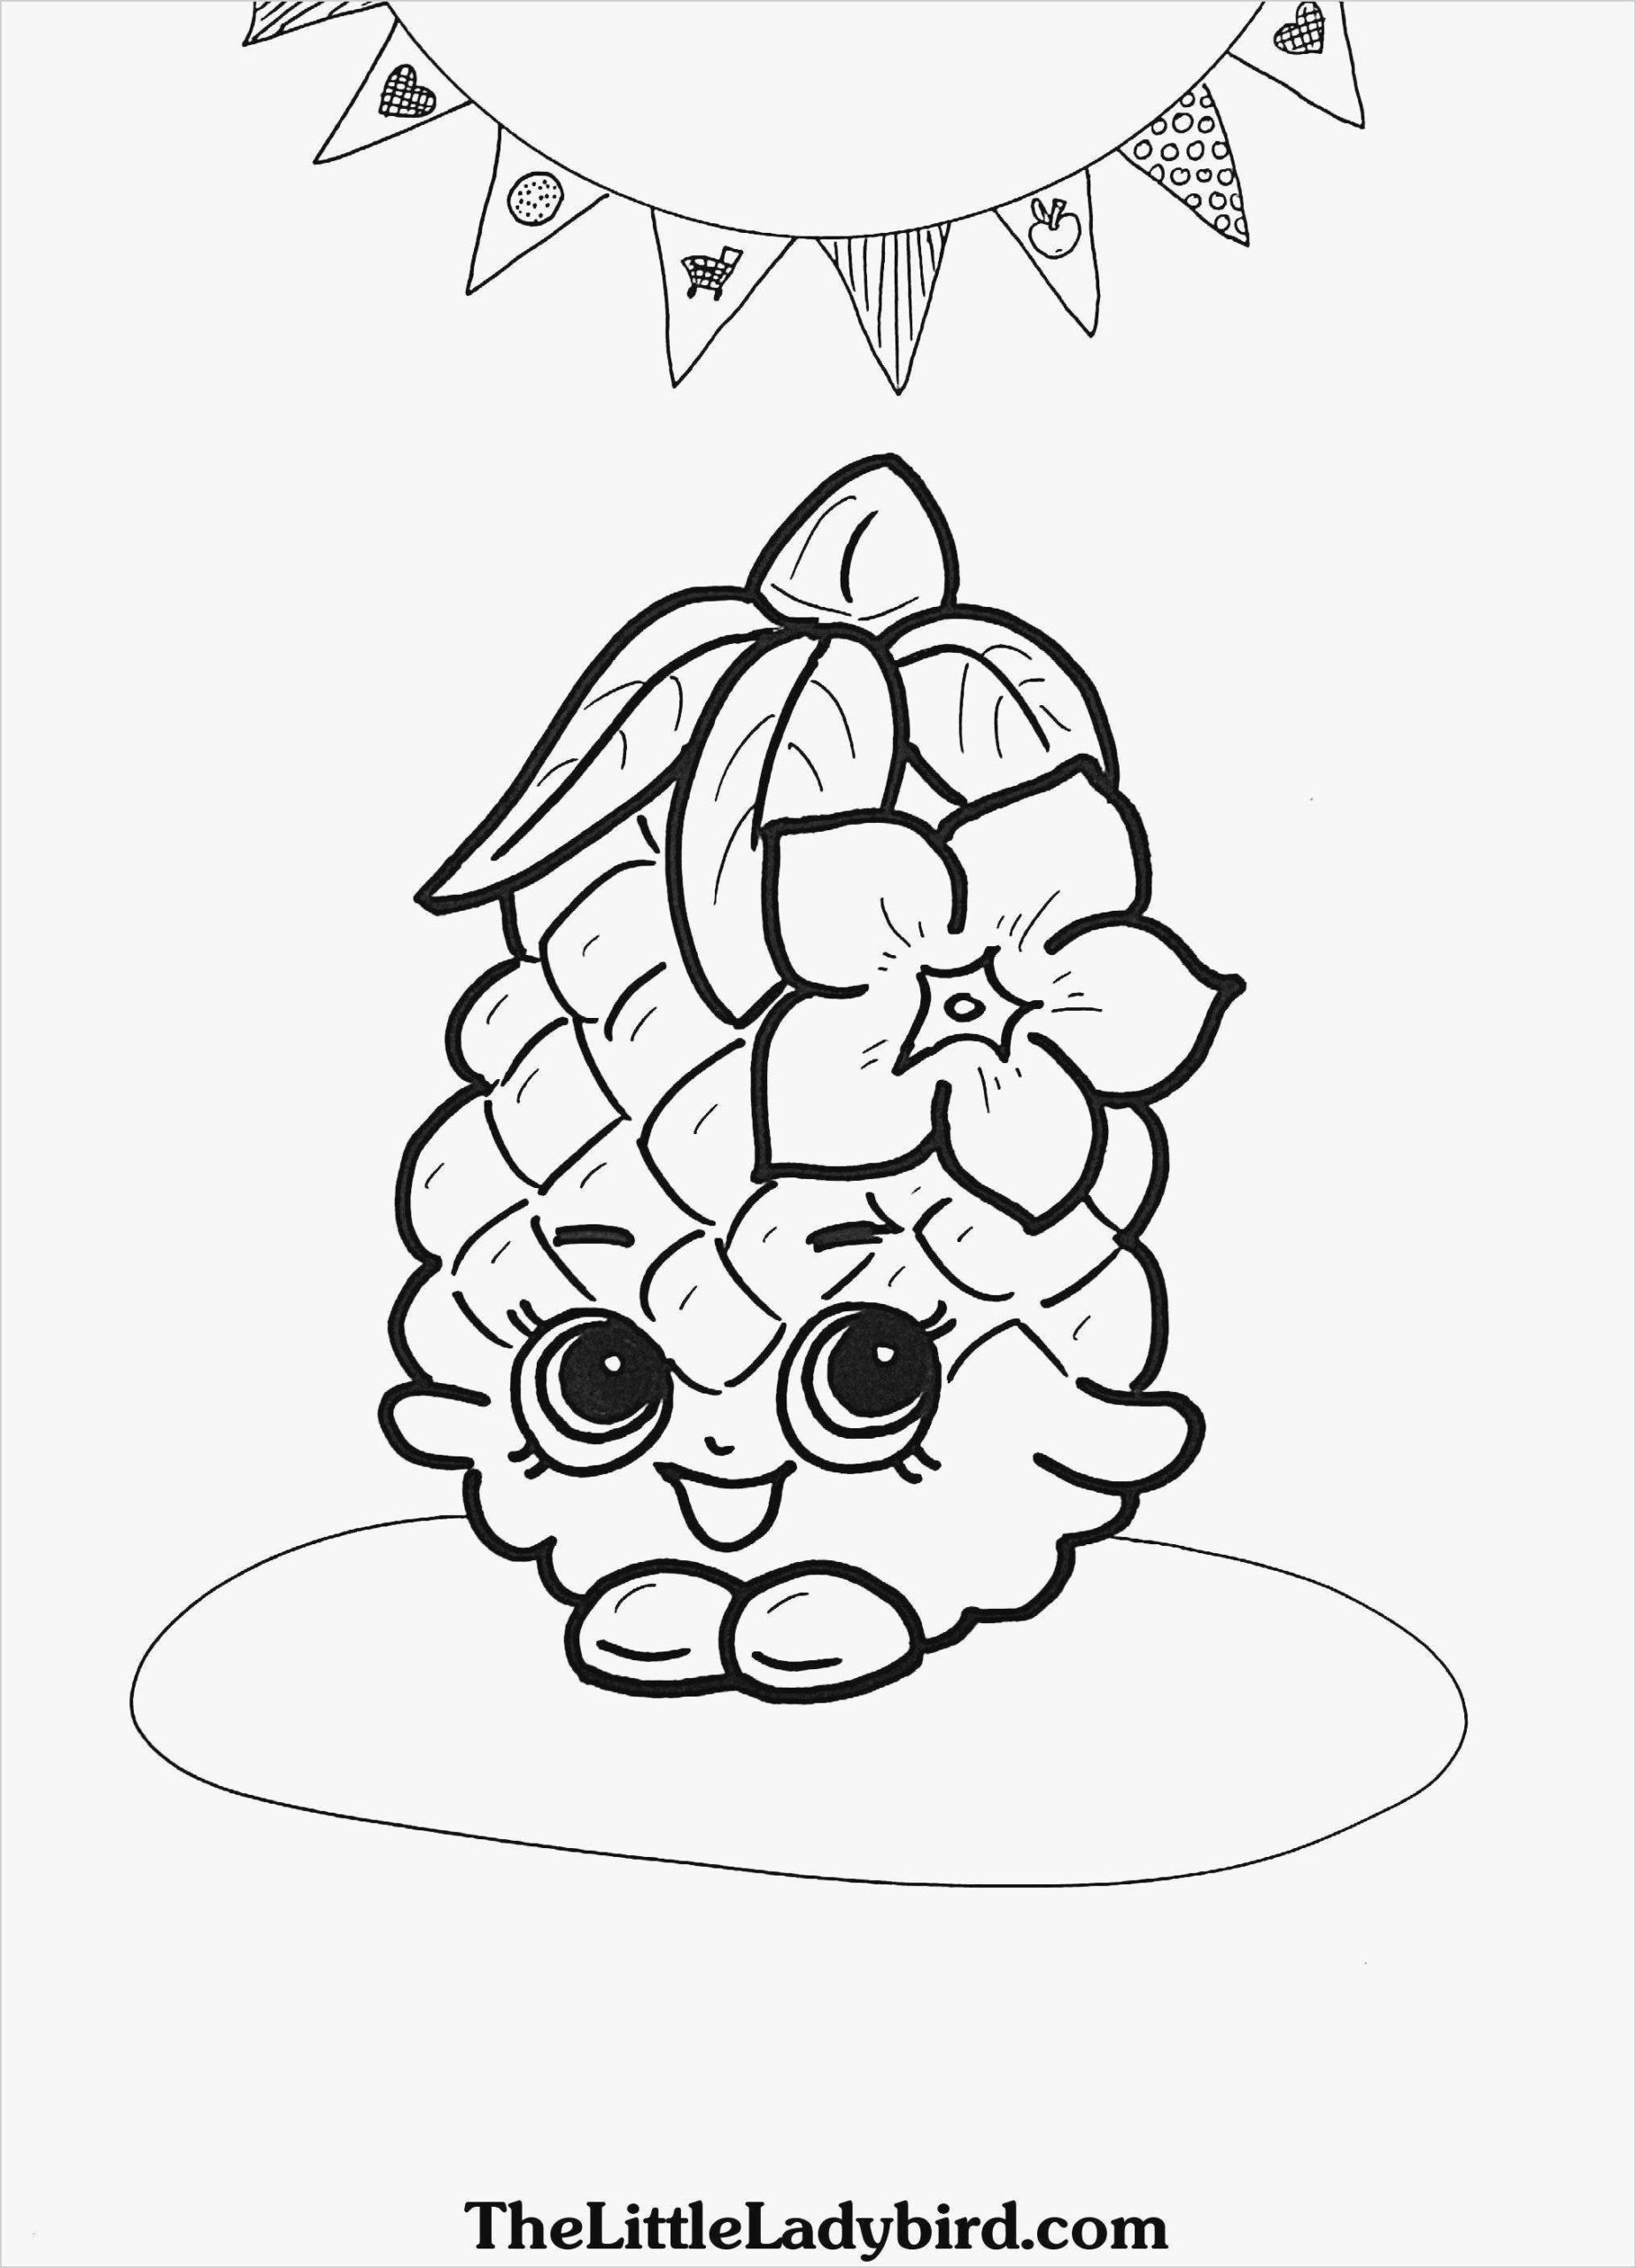 Free Printable Mini Coloring Books Coloring Small Coloring Pages Small Printable Coloring Valentine Coloring Pages Summer Coloring Pages Animal Coloring Pages